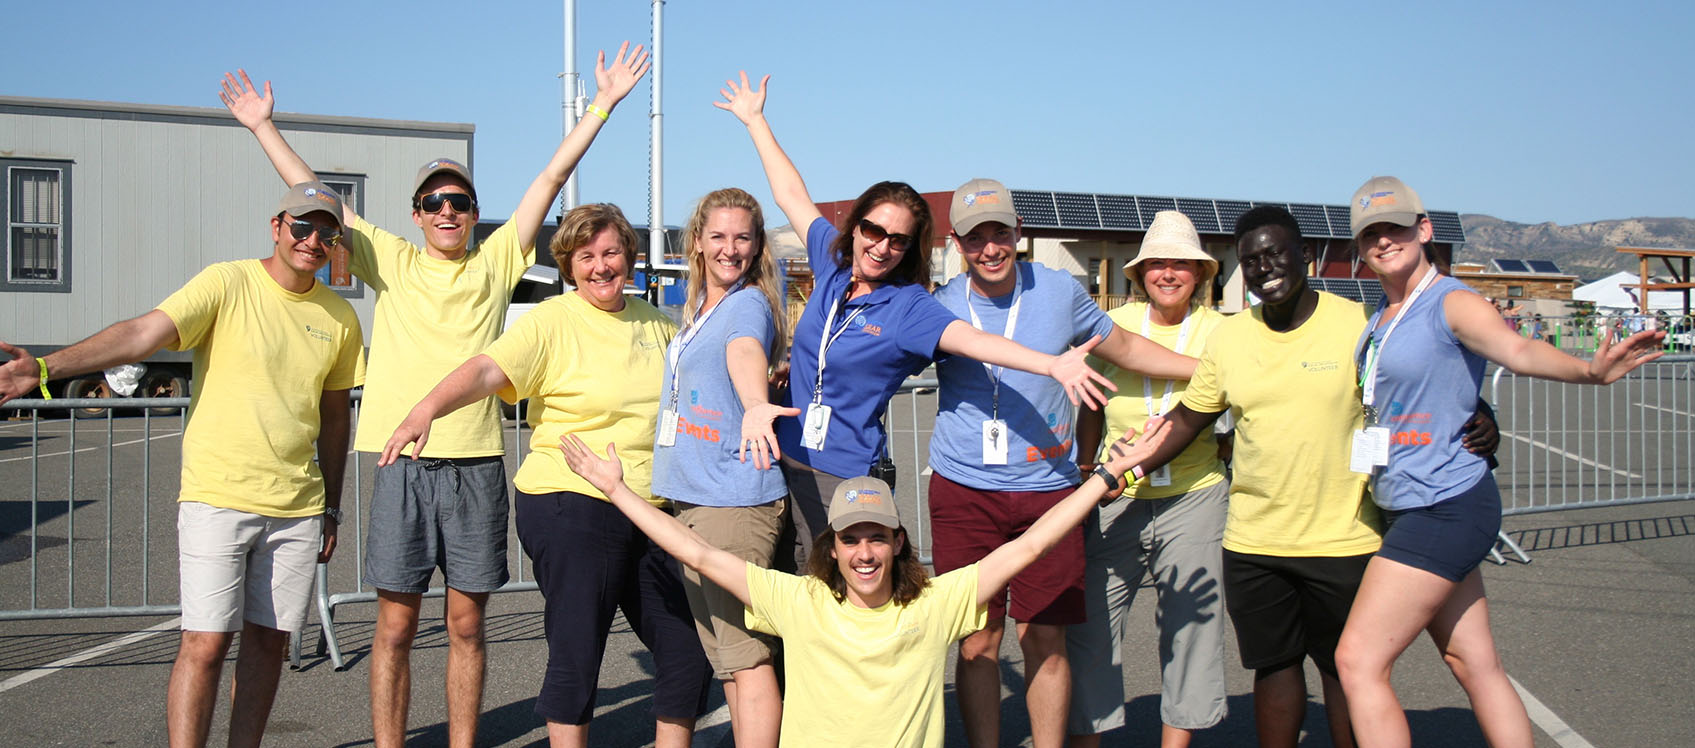 Photo of Solar Decathlon 2015 volunteer program staff celebrating.